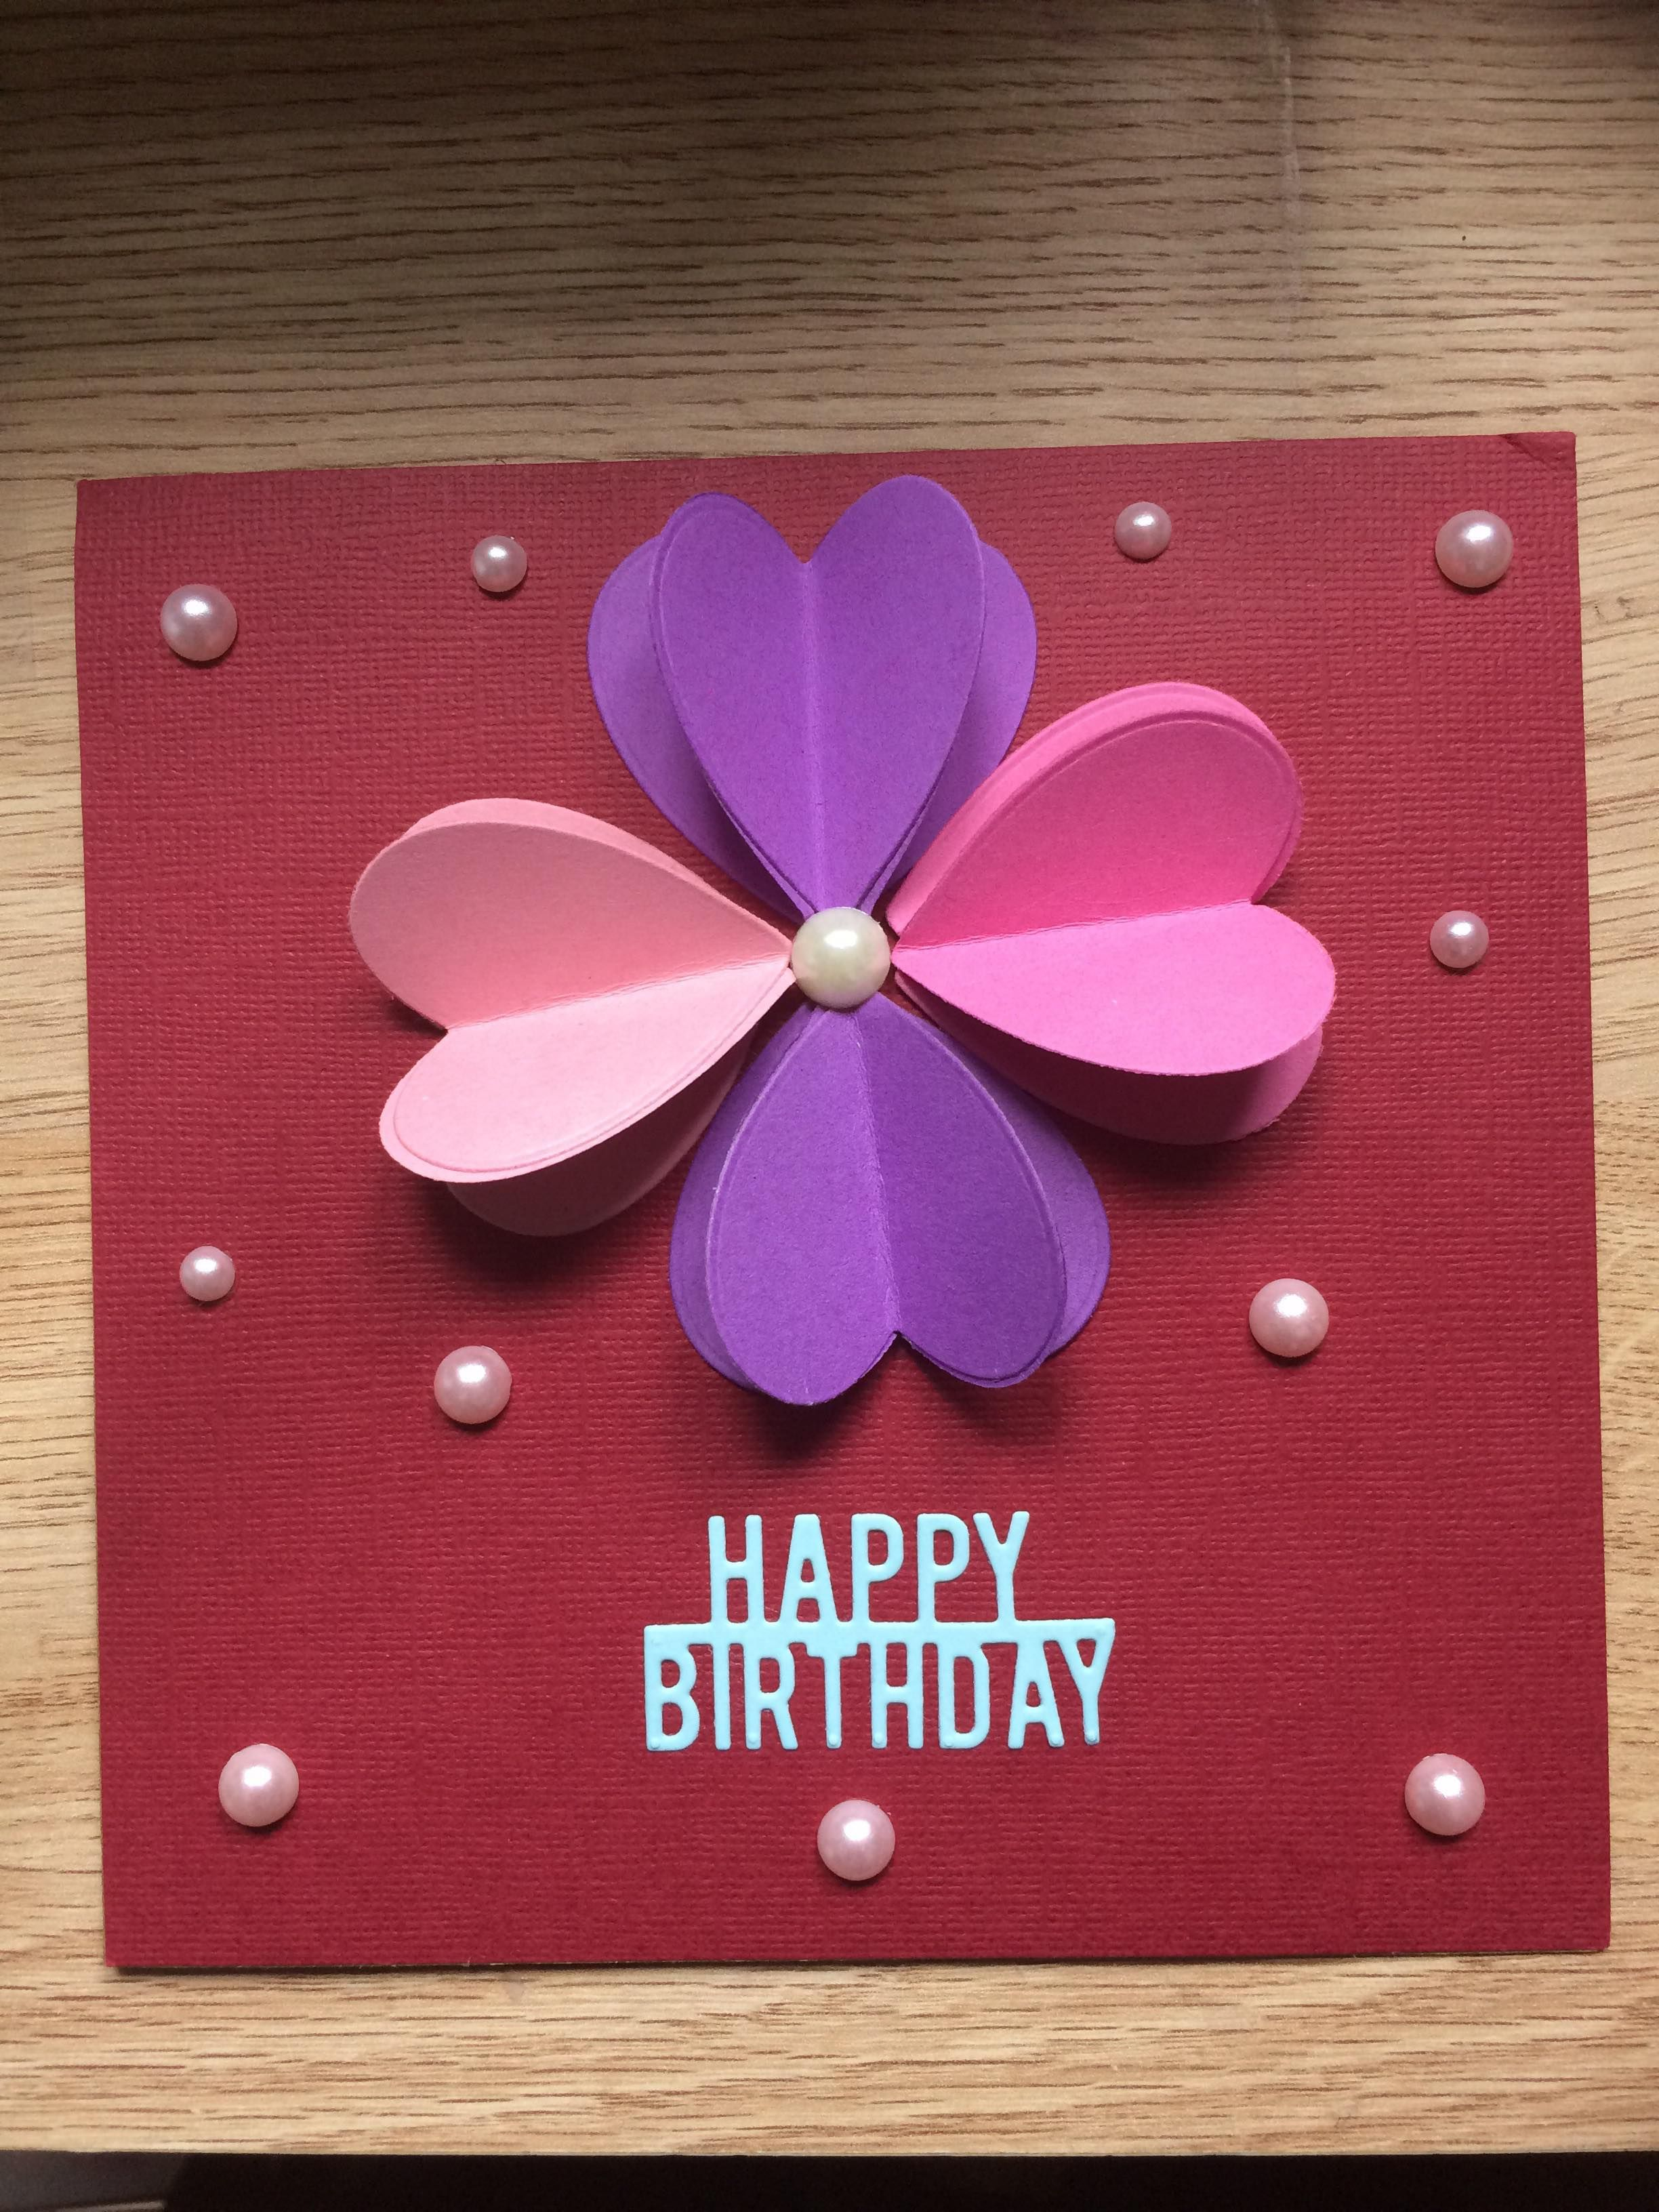 A Simple Design For Any Age Made With Basic Shapes And Colours Homemade Birthday Cards Happy Birthday Cards Birthday Cards